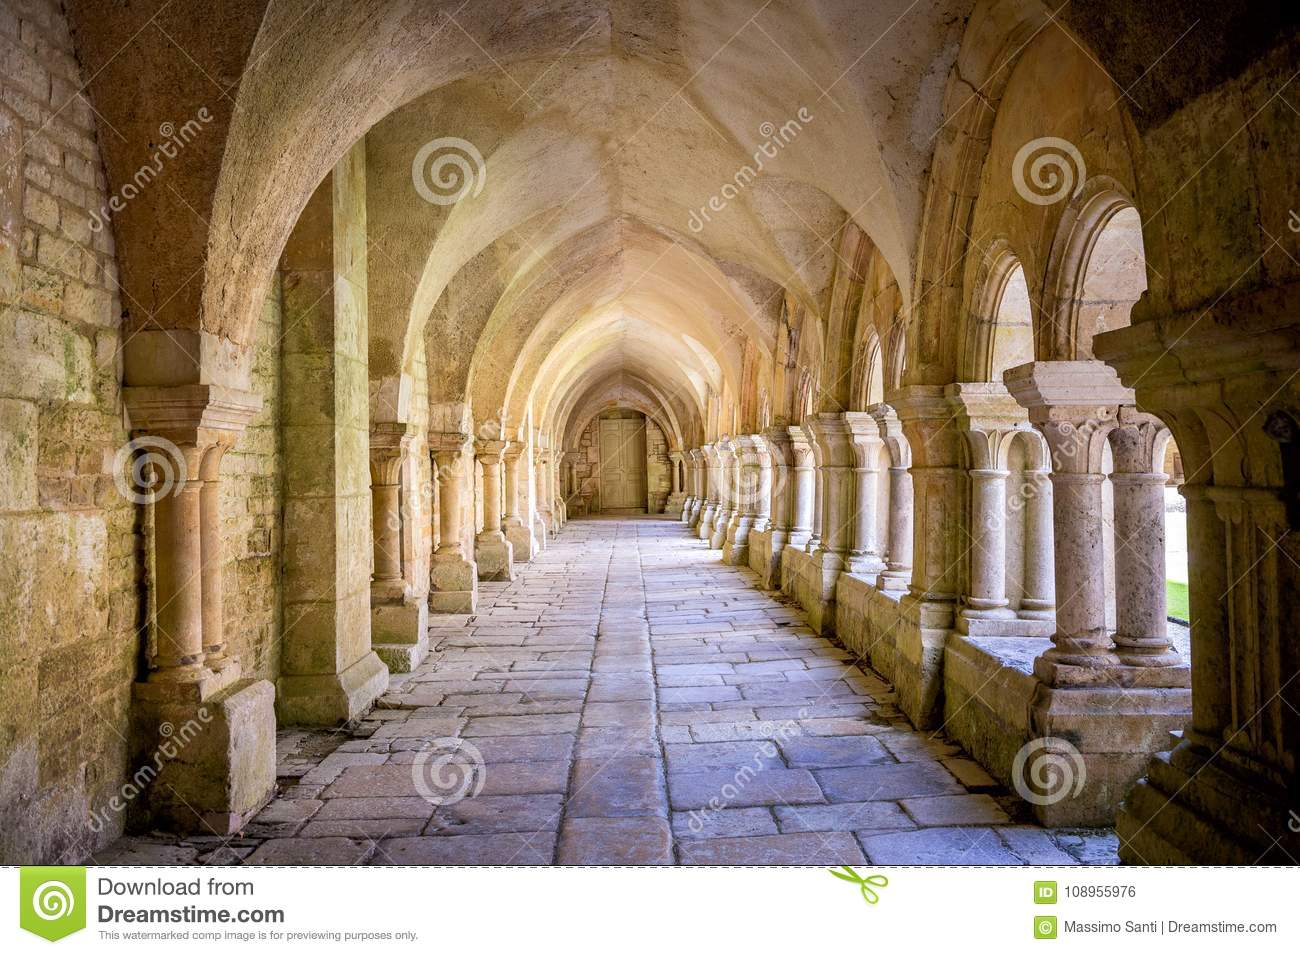 Abbey of Fontenay, Burgundy, France. Interior of famous Cistercian Abbey of Fontenay, a UNESCO World Heritage Site since 1981